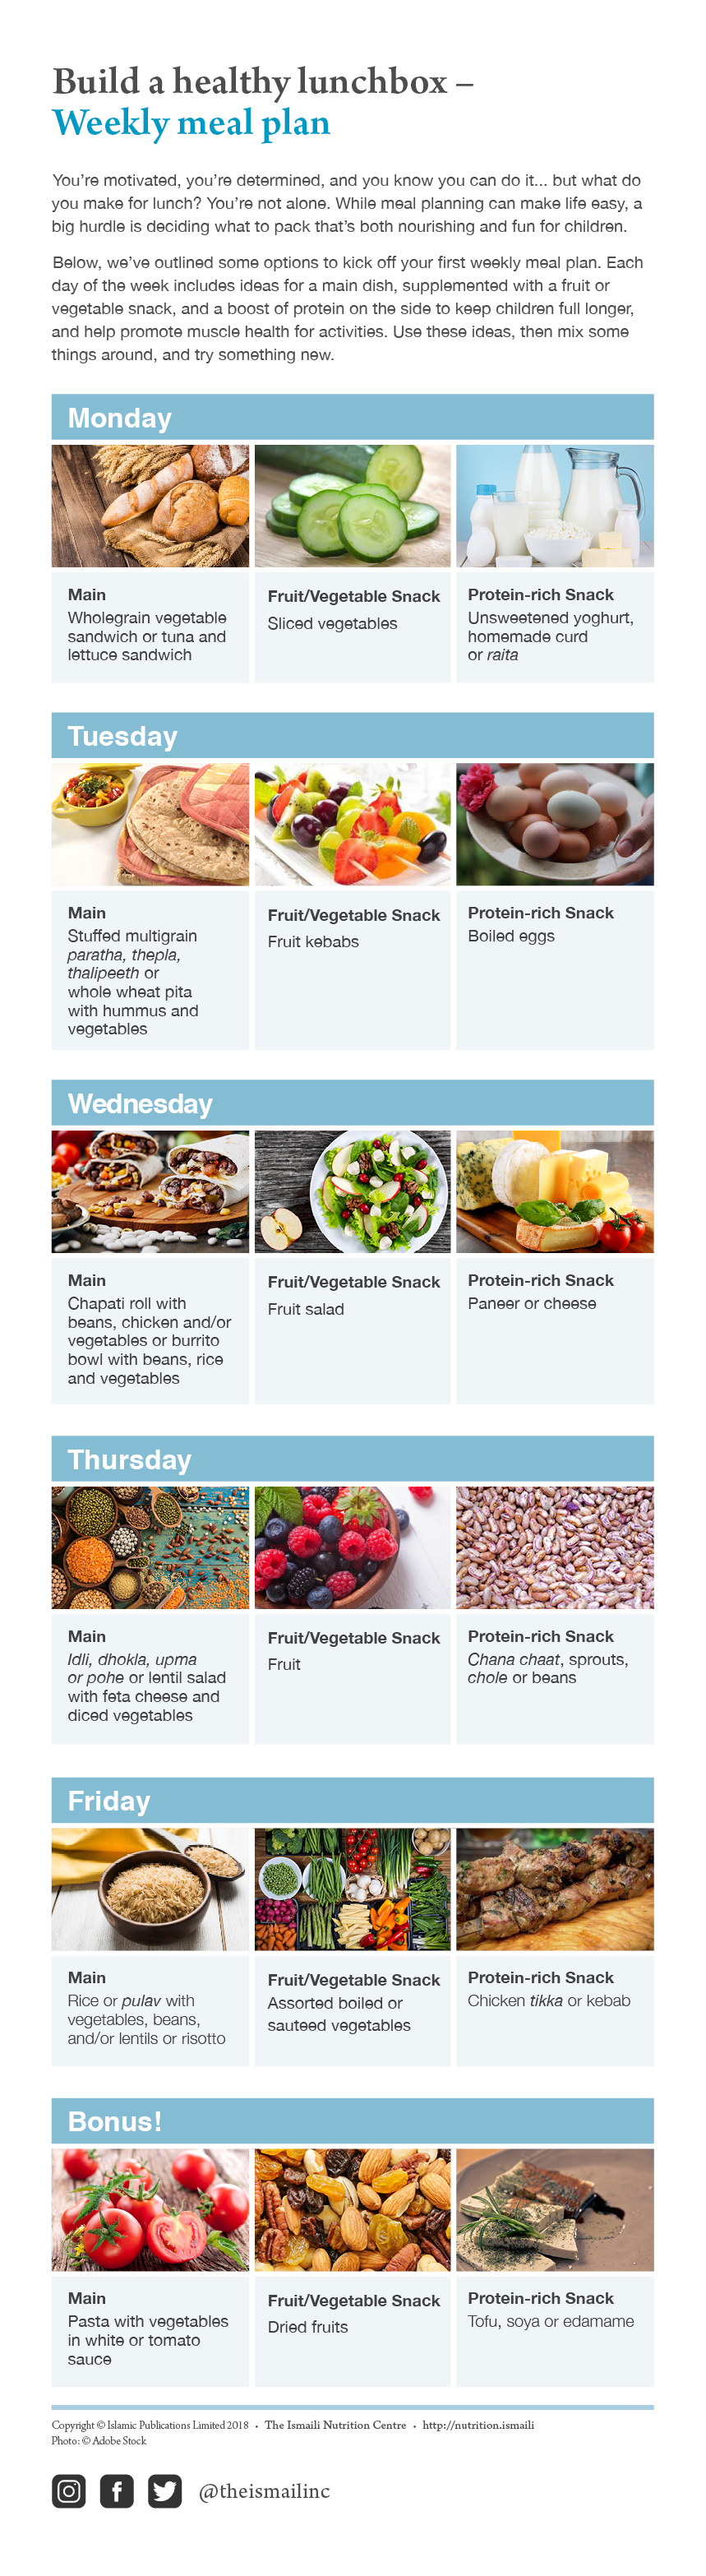 Healthy Lunch Box Weekly Meal Plan